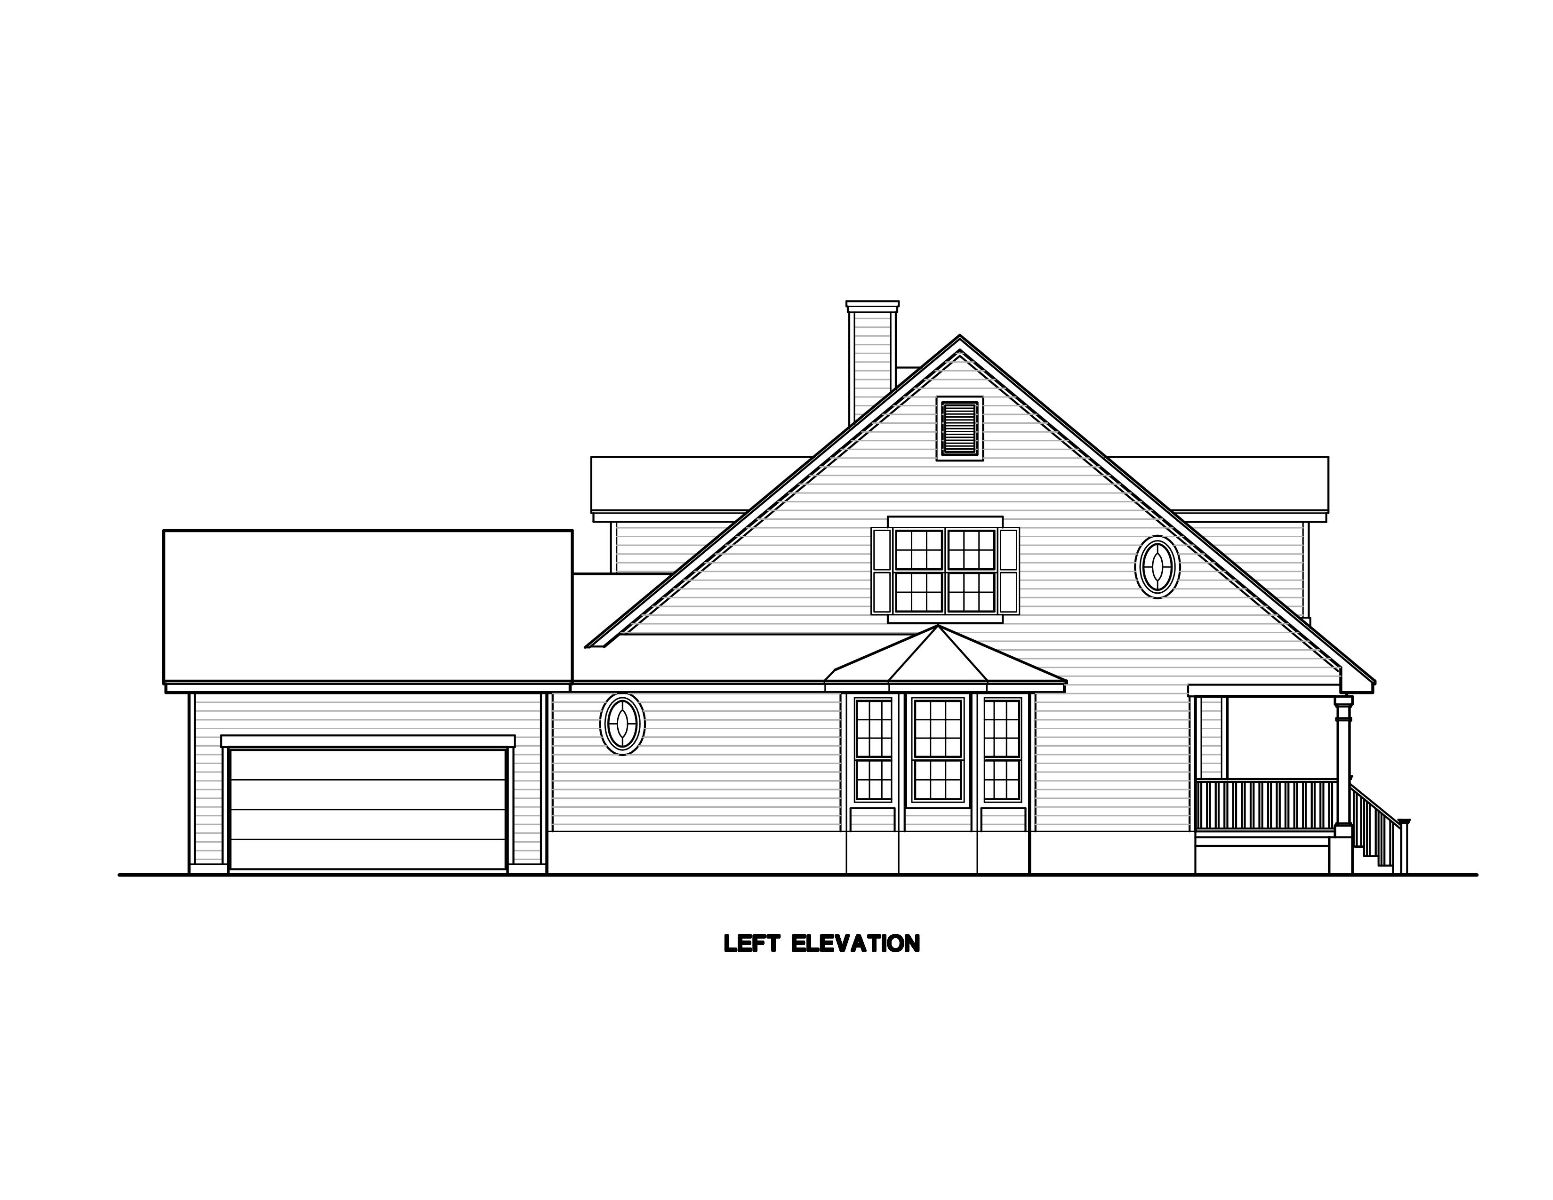 South Elevation by DFD House Plans